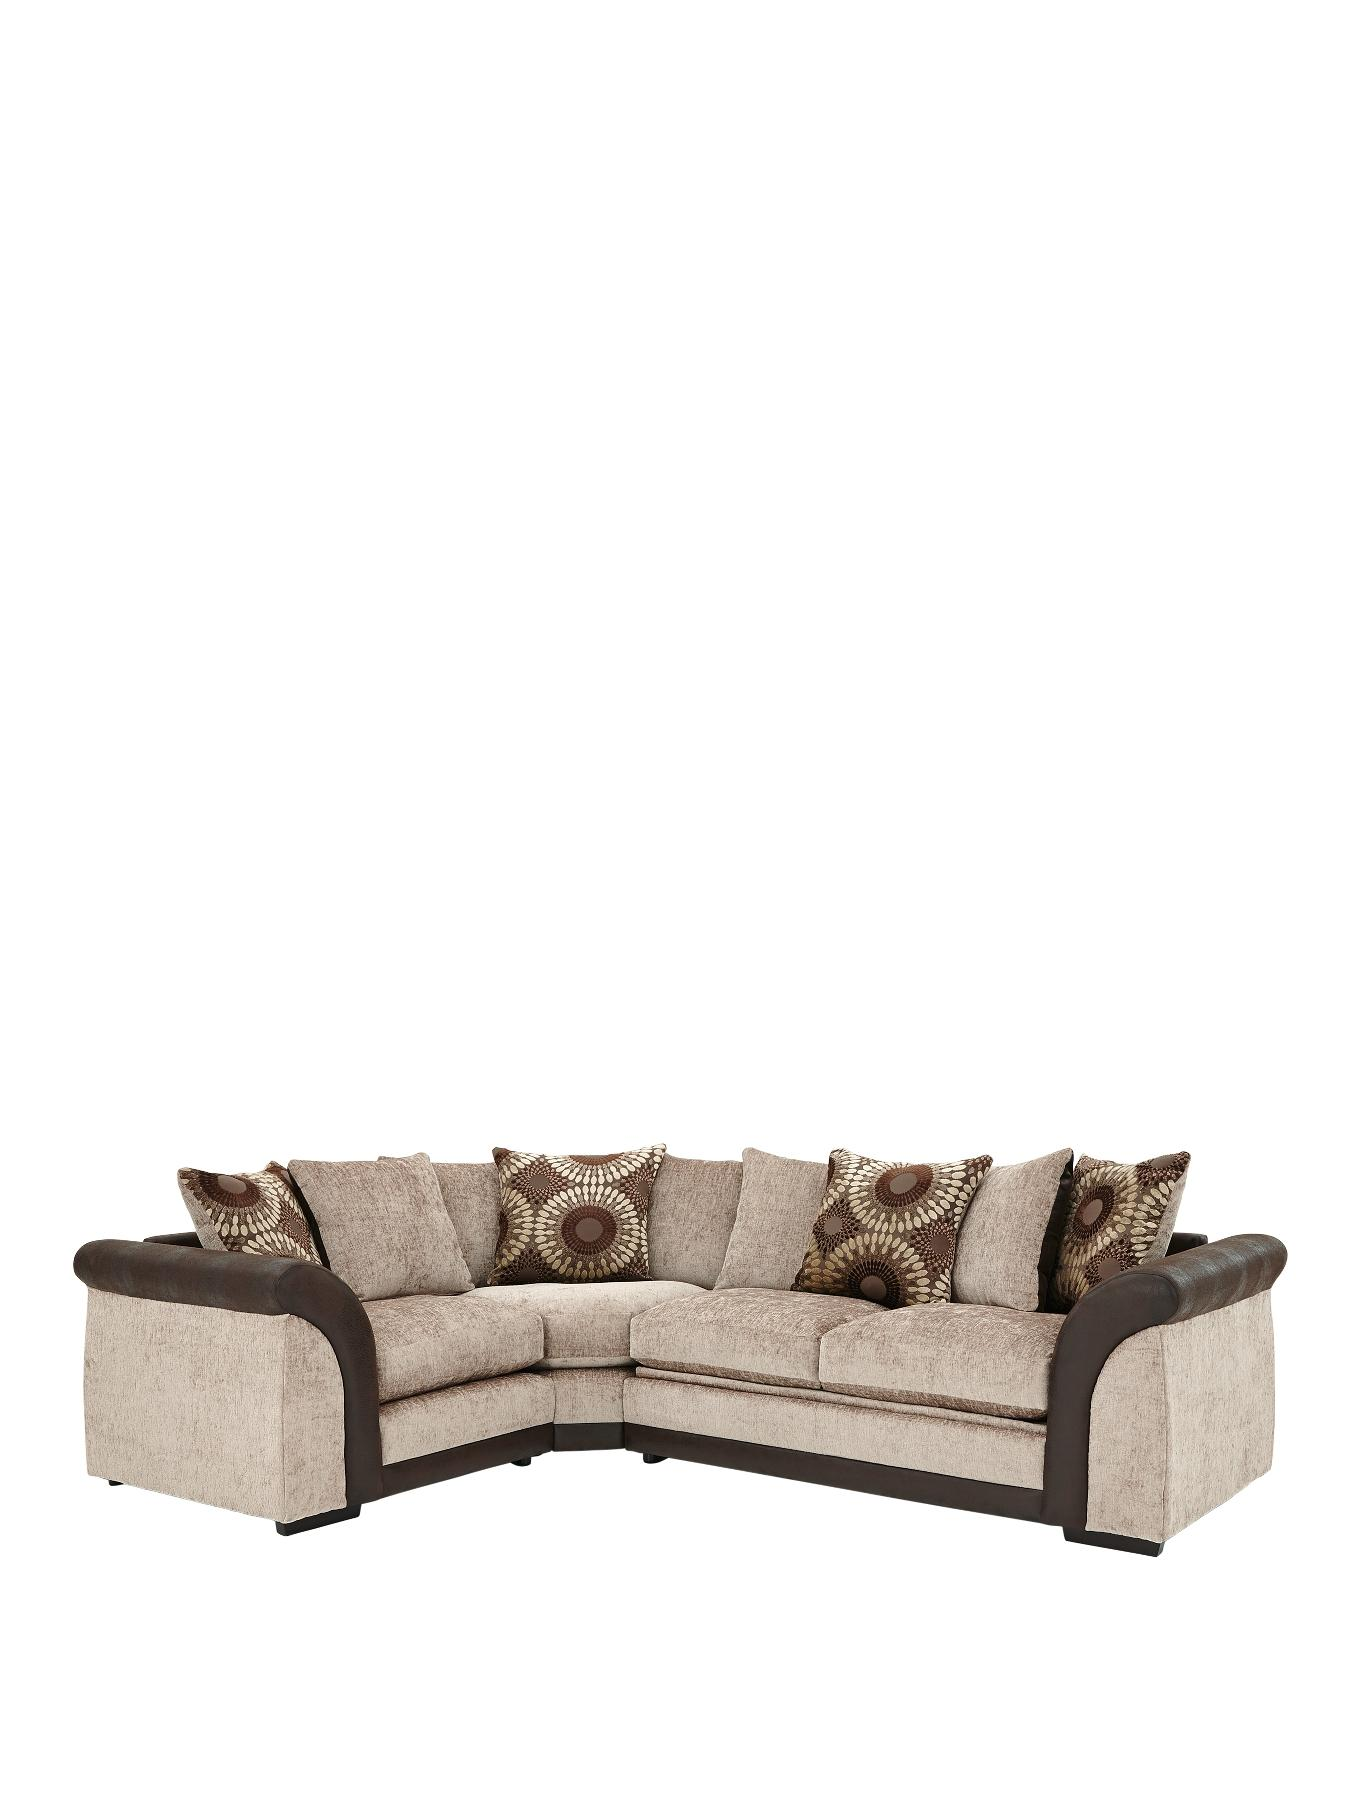 Deane LeftHand Corner Group with Sofa Bed BlackChocolate